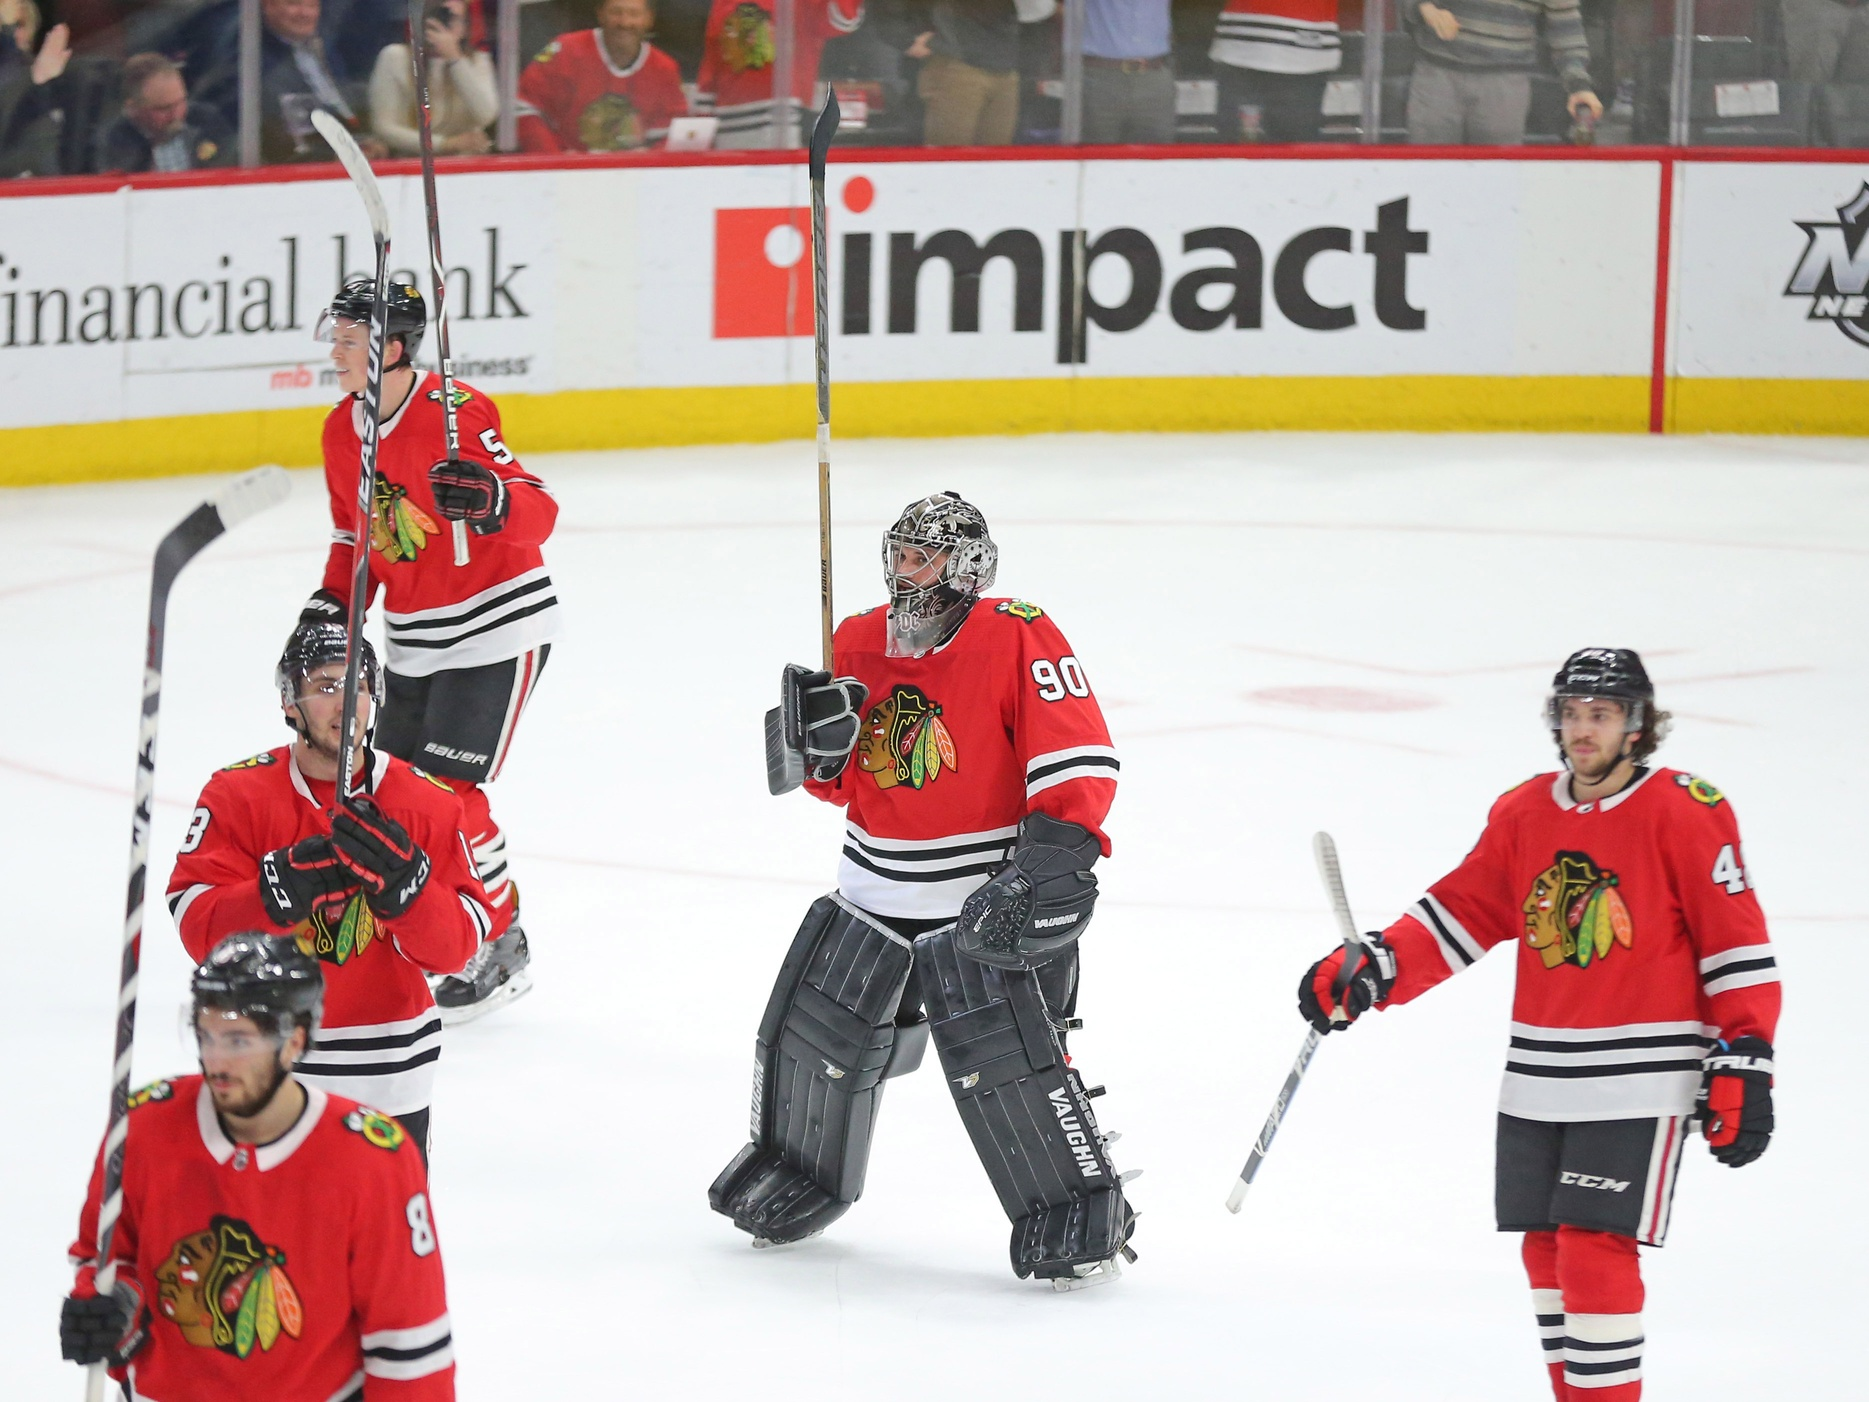 Blackhawks play 36-year-old local accountant as emergency goalie